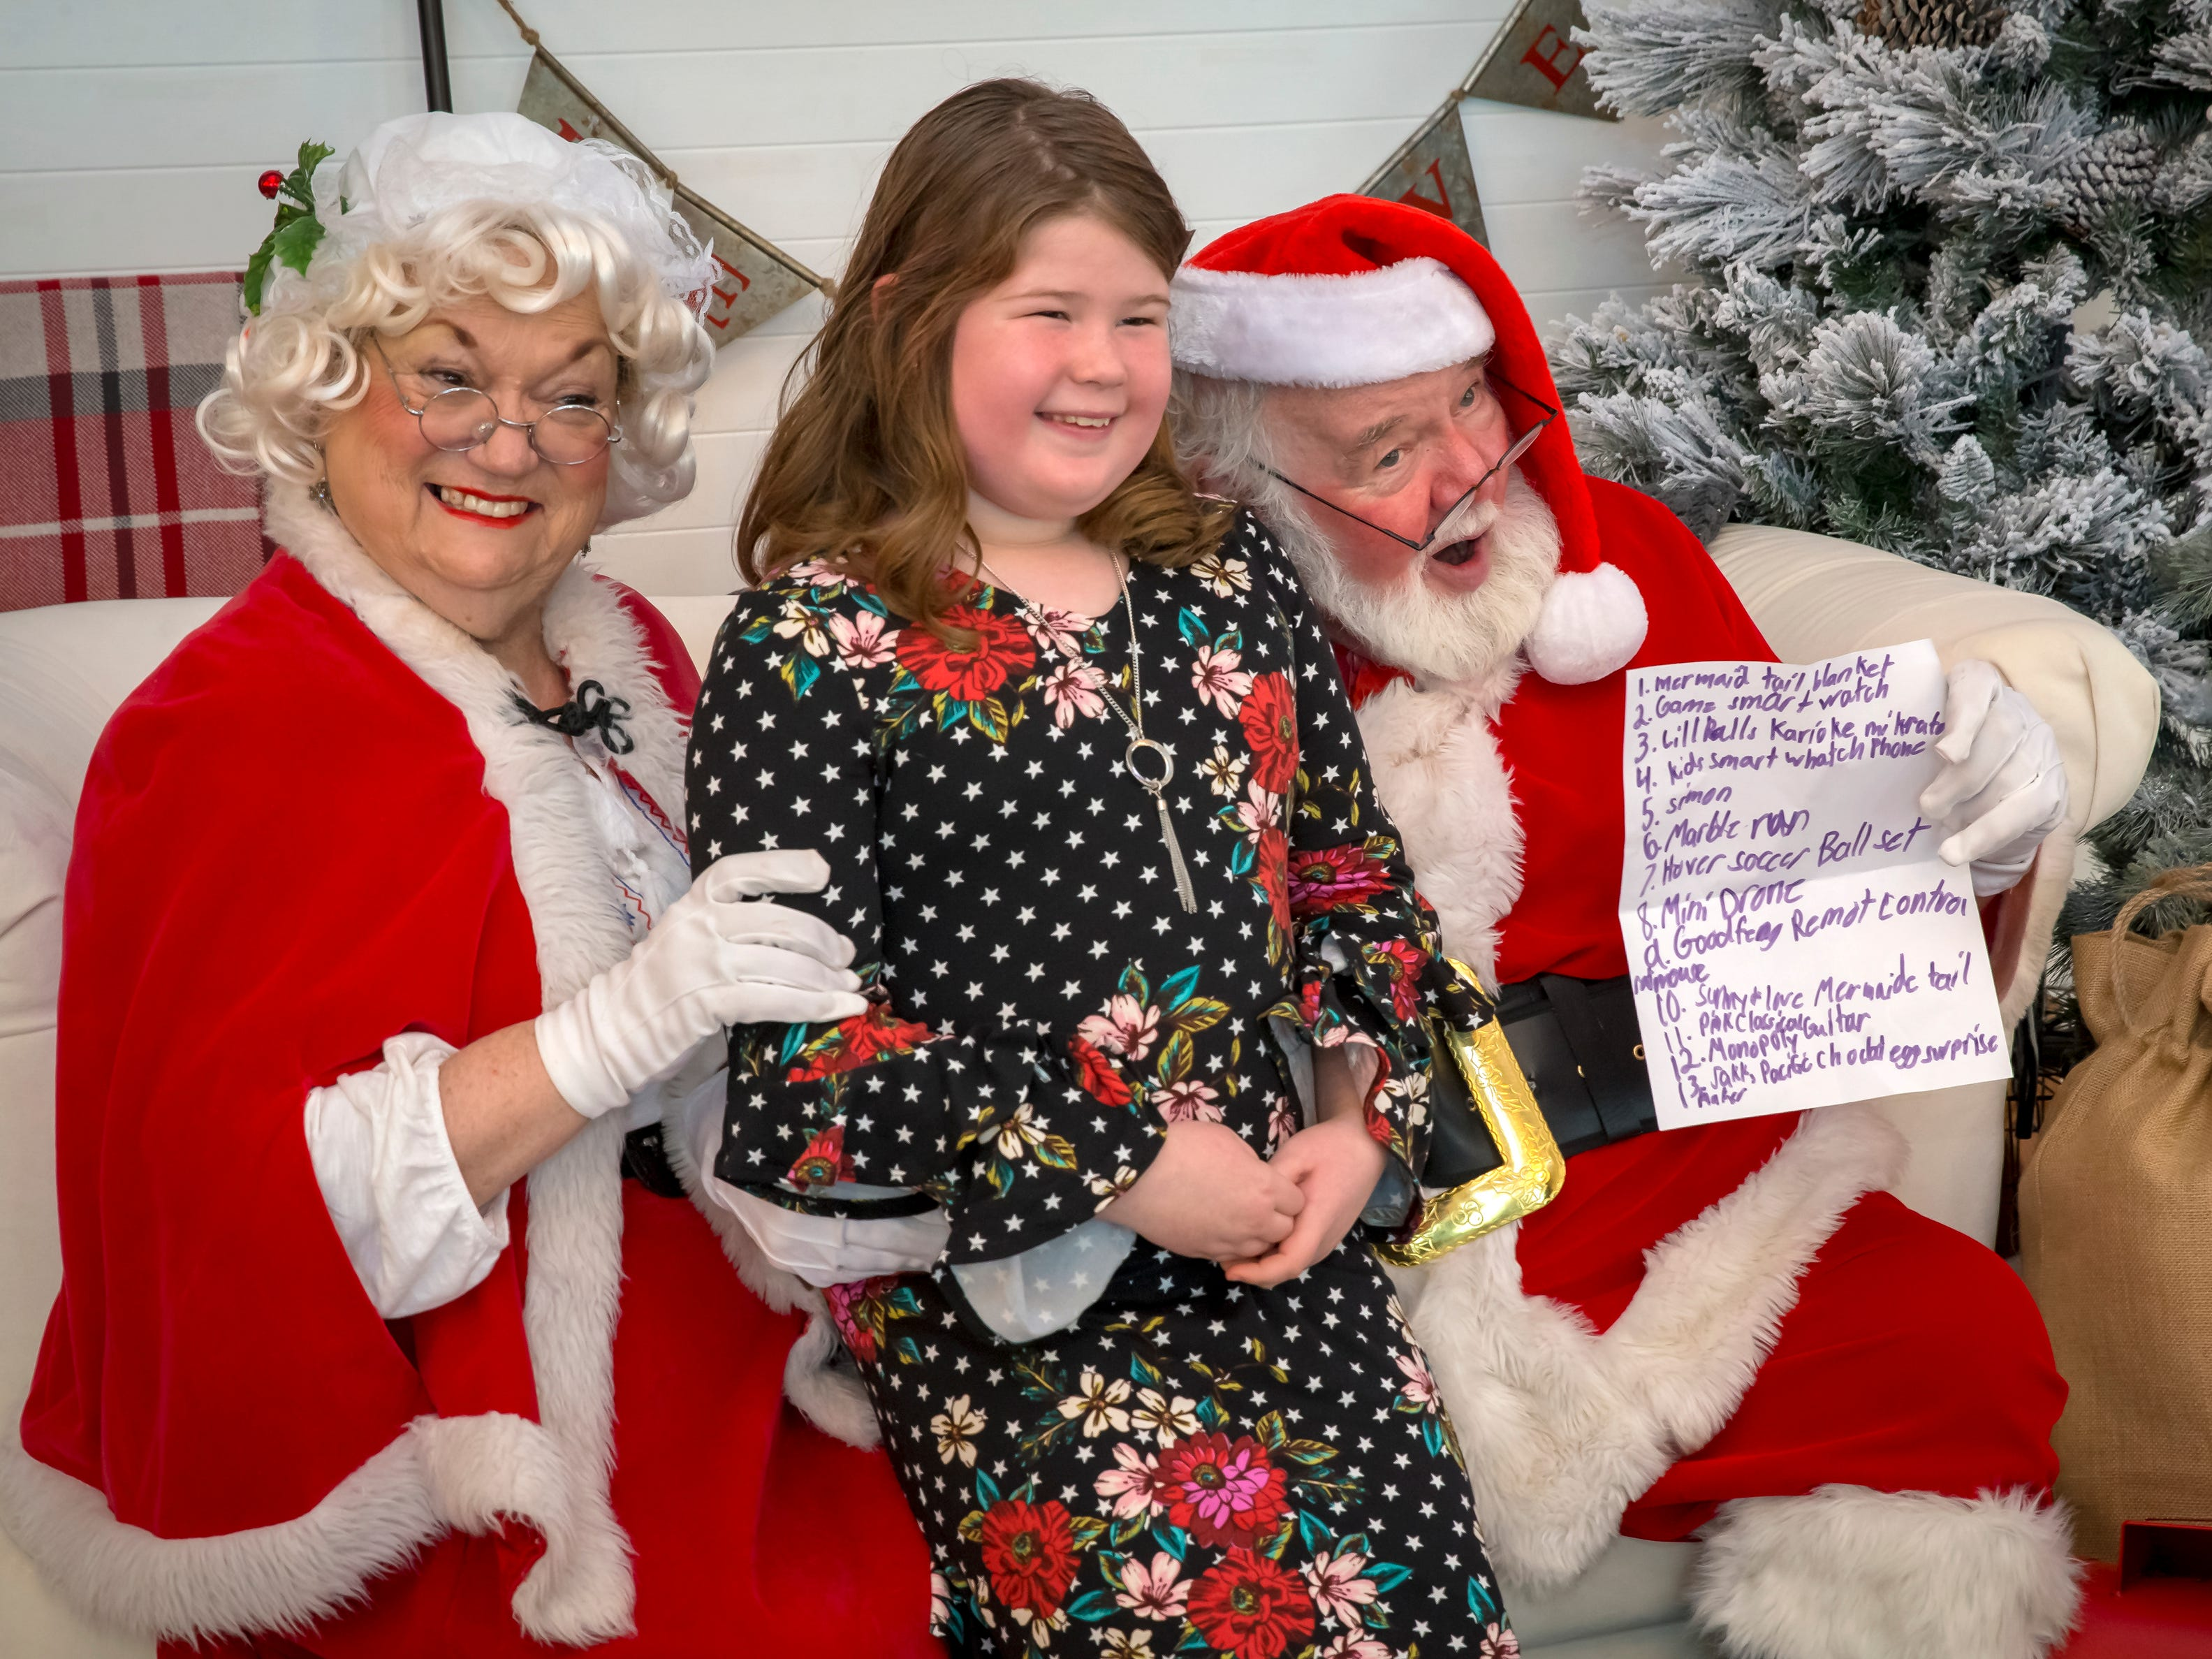 Anna Rainwater shared her Christmas list with Santa and Mrs. Claus during a visit to The Fountains at Gateway on Saturday, Dec. 1.